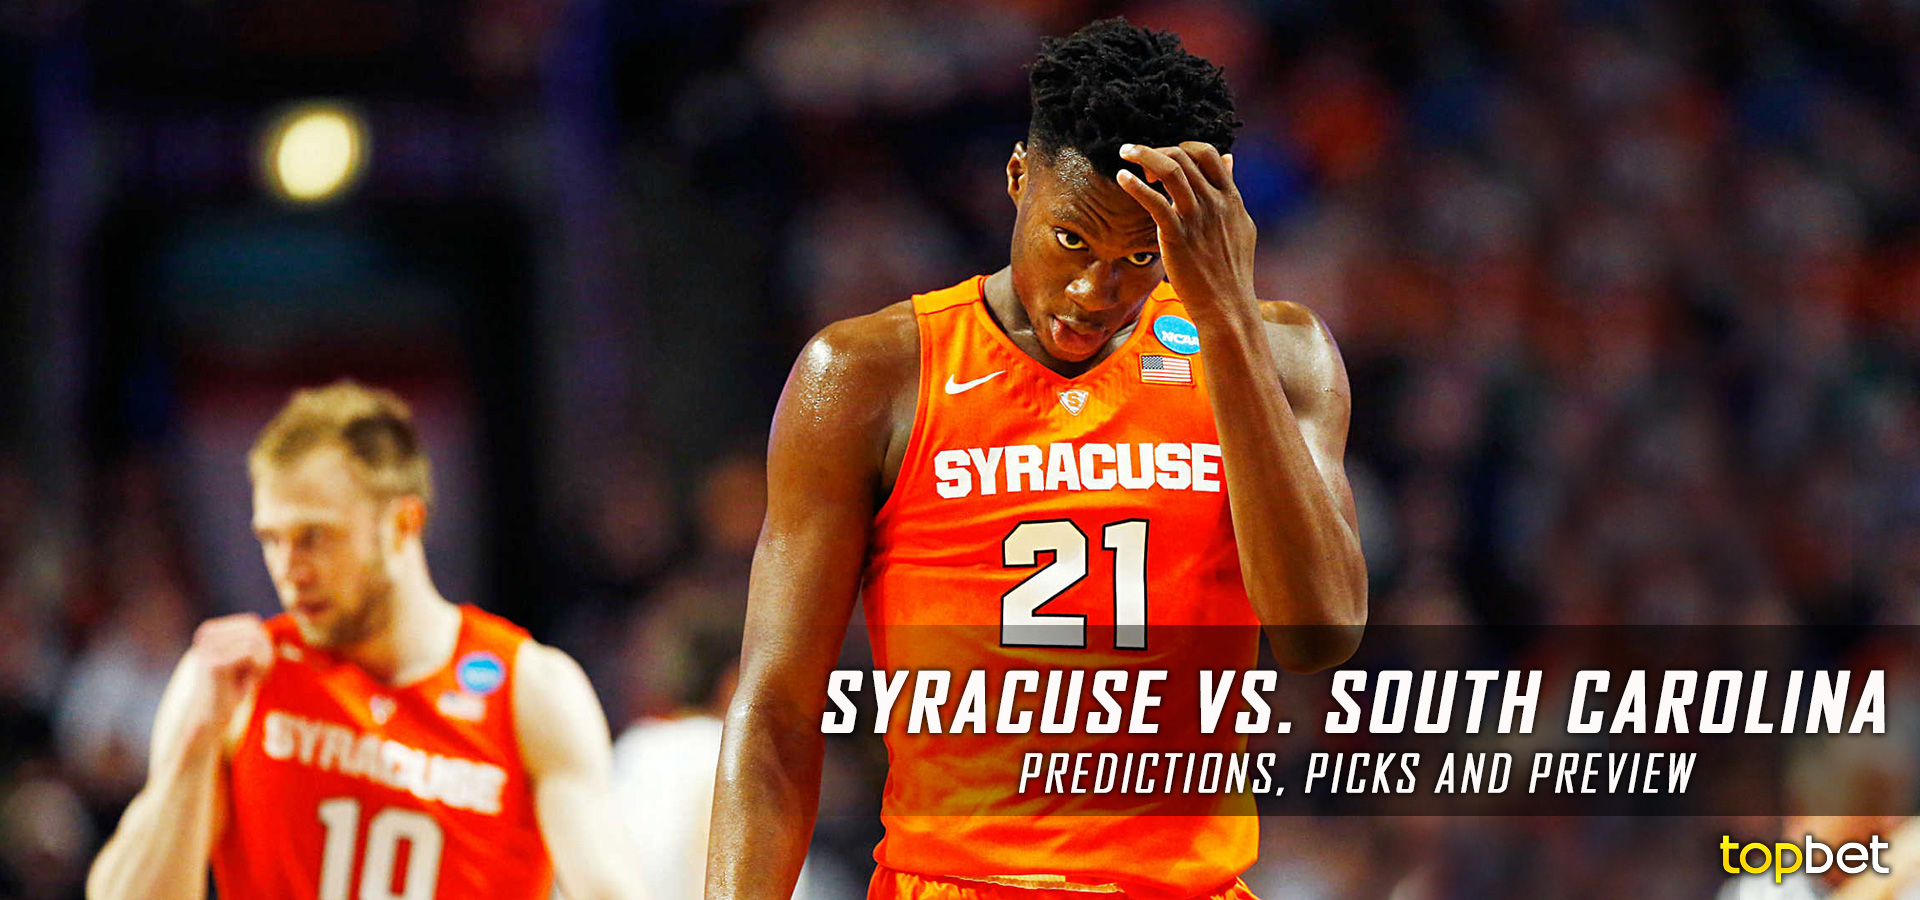 South Carolina Vs Syracuse Basketball Predictions And Preview